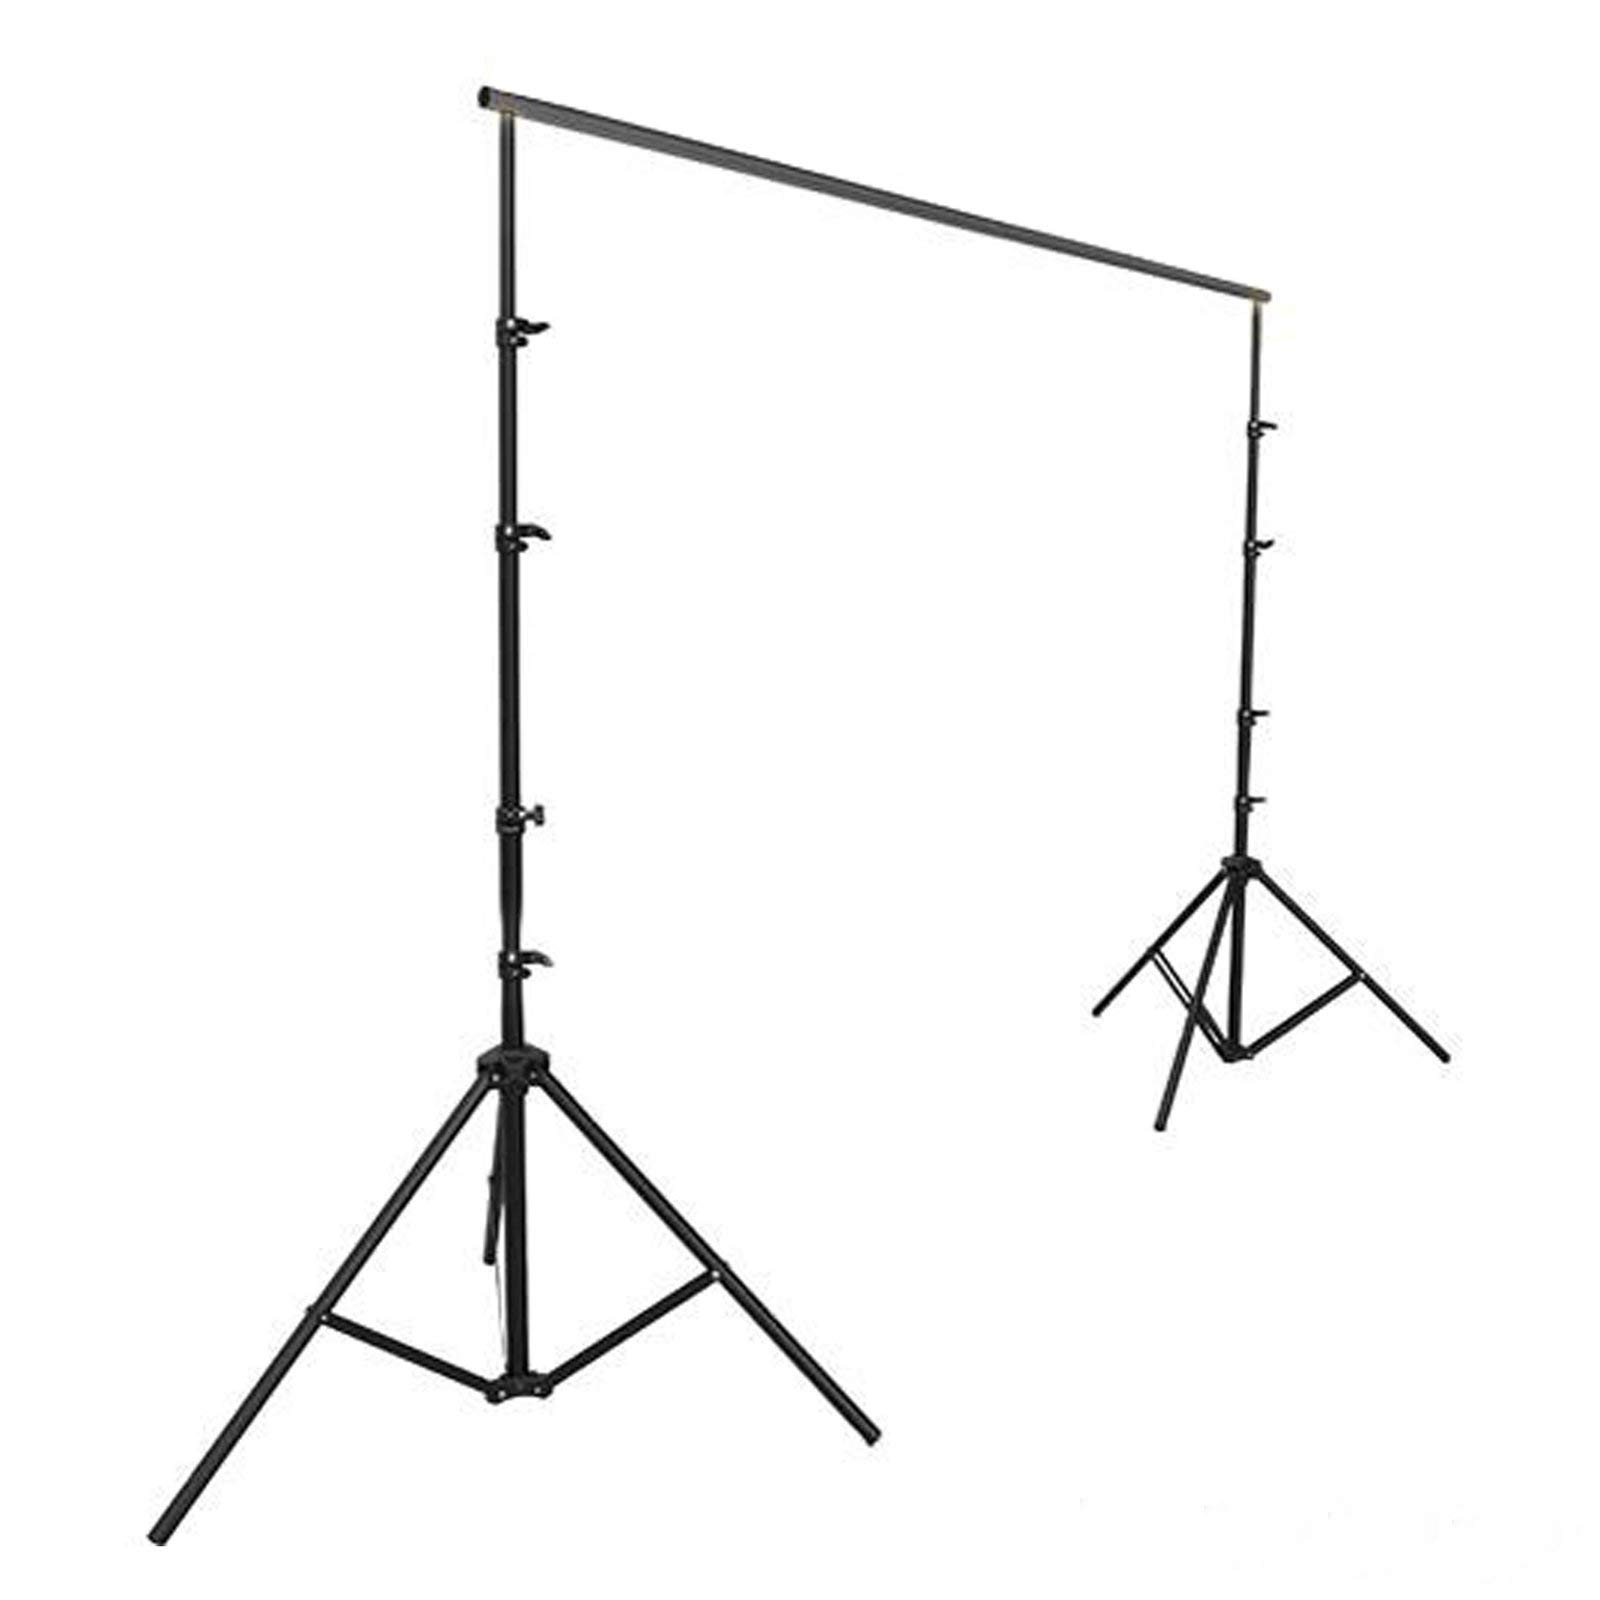 Efavormart 12ft x12ft Heavy Duty Pipe and Drape Kit Wedding Photography Backdrop Stand by Efavormart.com